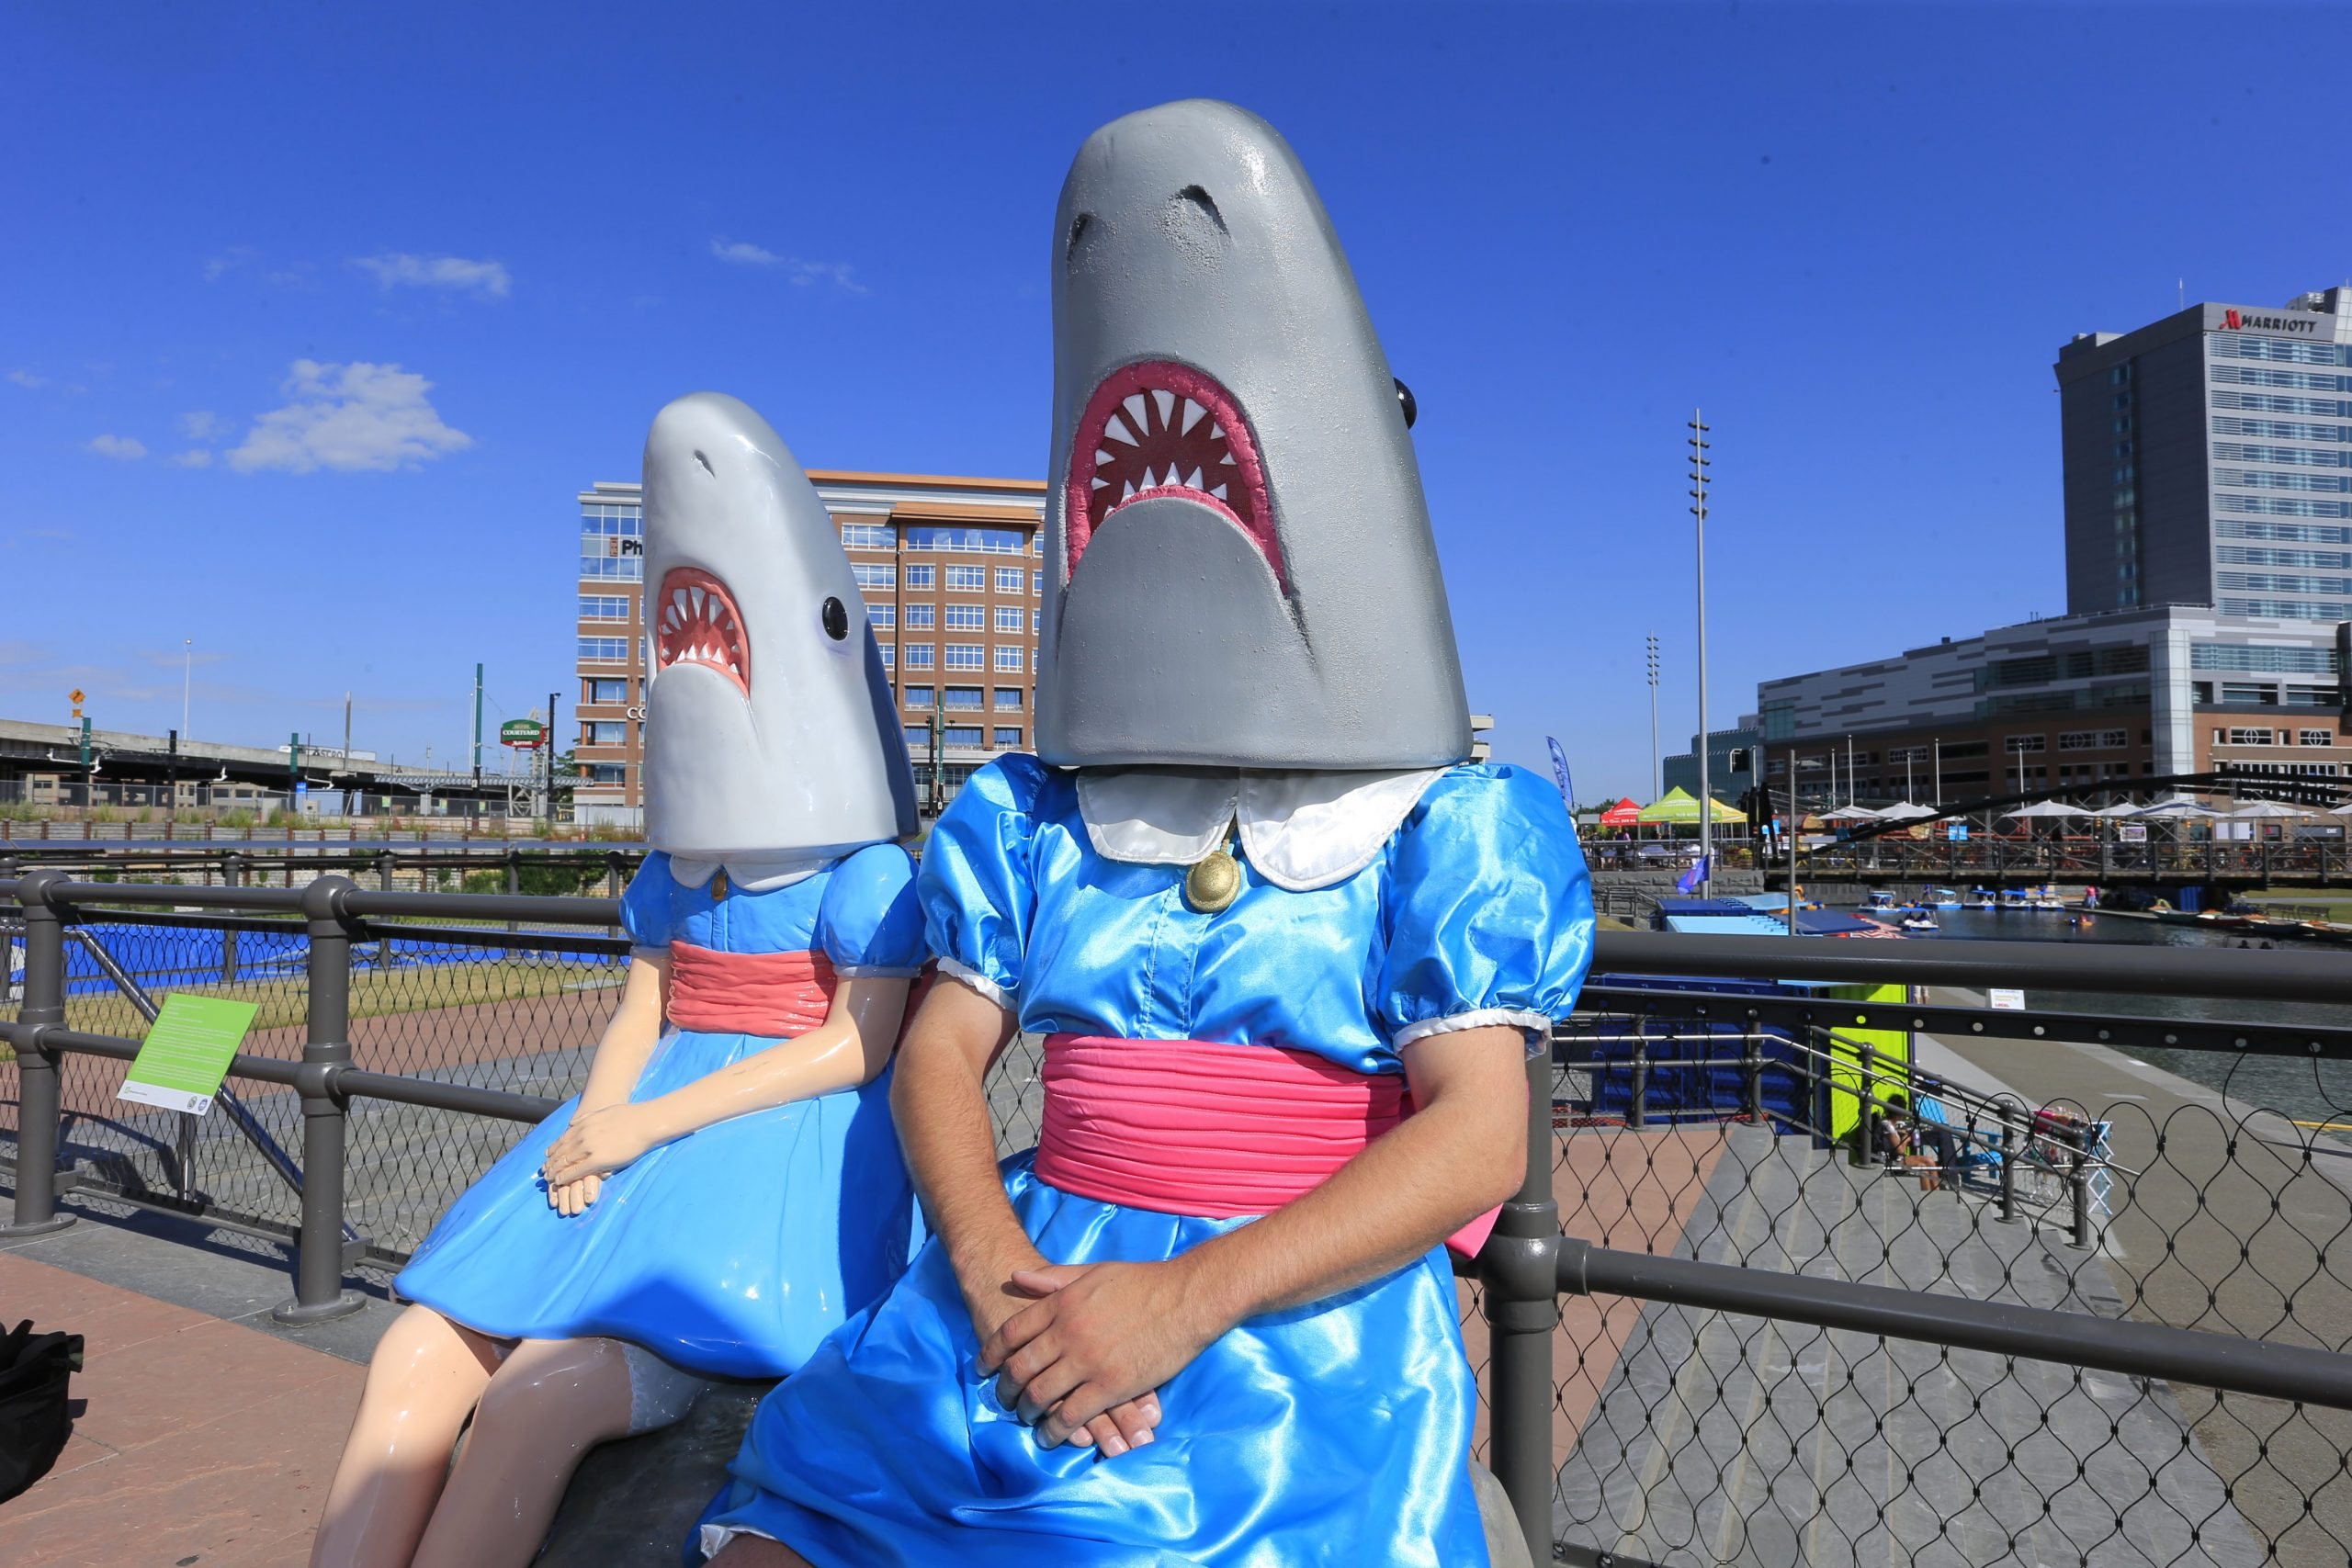 Adam Kreutinger,  dressed as Shark Girl, made his own costume that he'll use during the upcoming school year to teach students in his art class about contemporary sculpture is pictured at Canalside on Thursday, July 30, 2015. (Harry Scull Jr / Buffalo News)